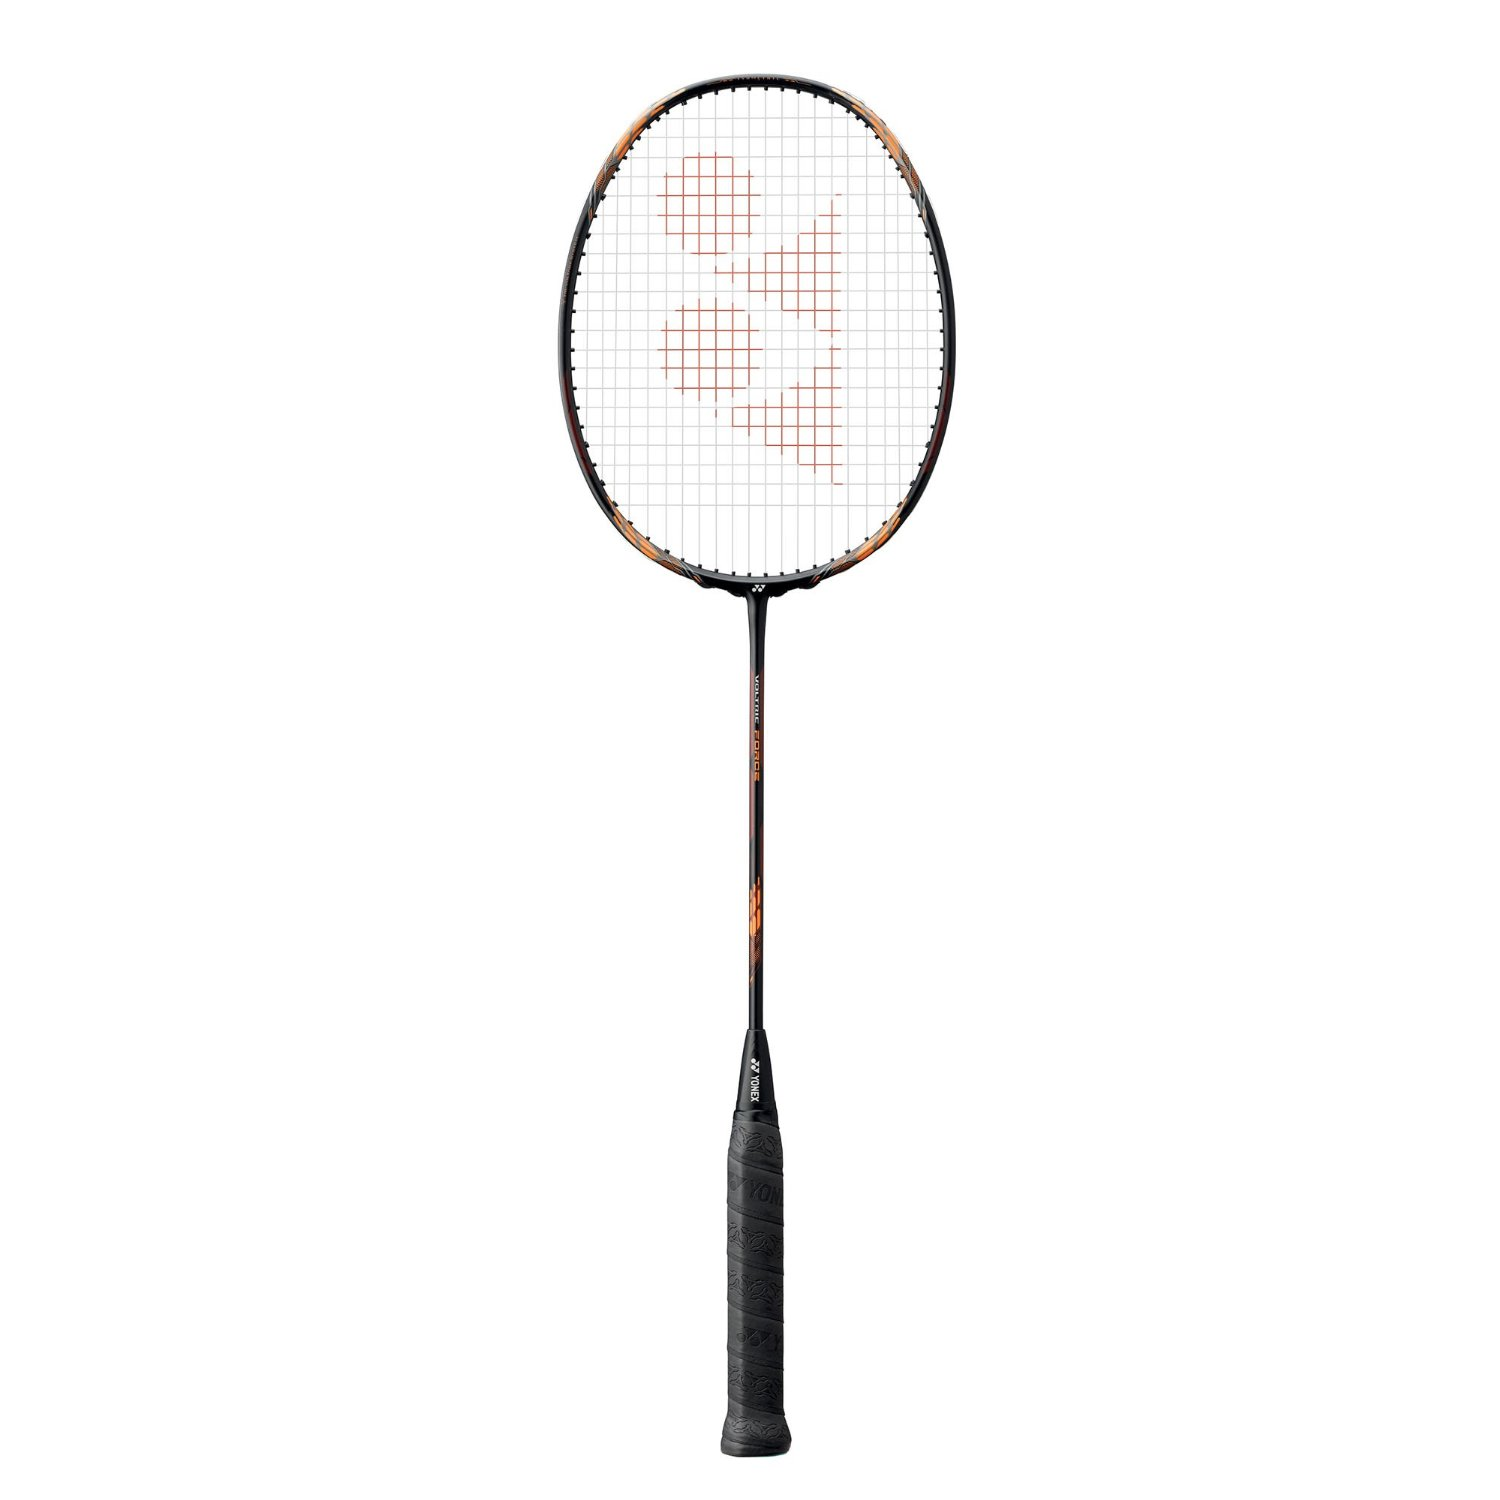 Yonex Voltric Force (Black) Badminton Racket